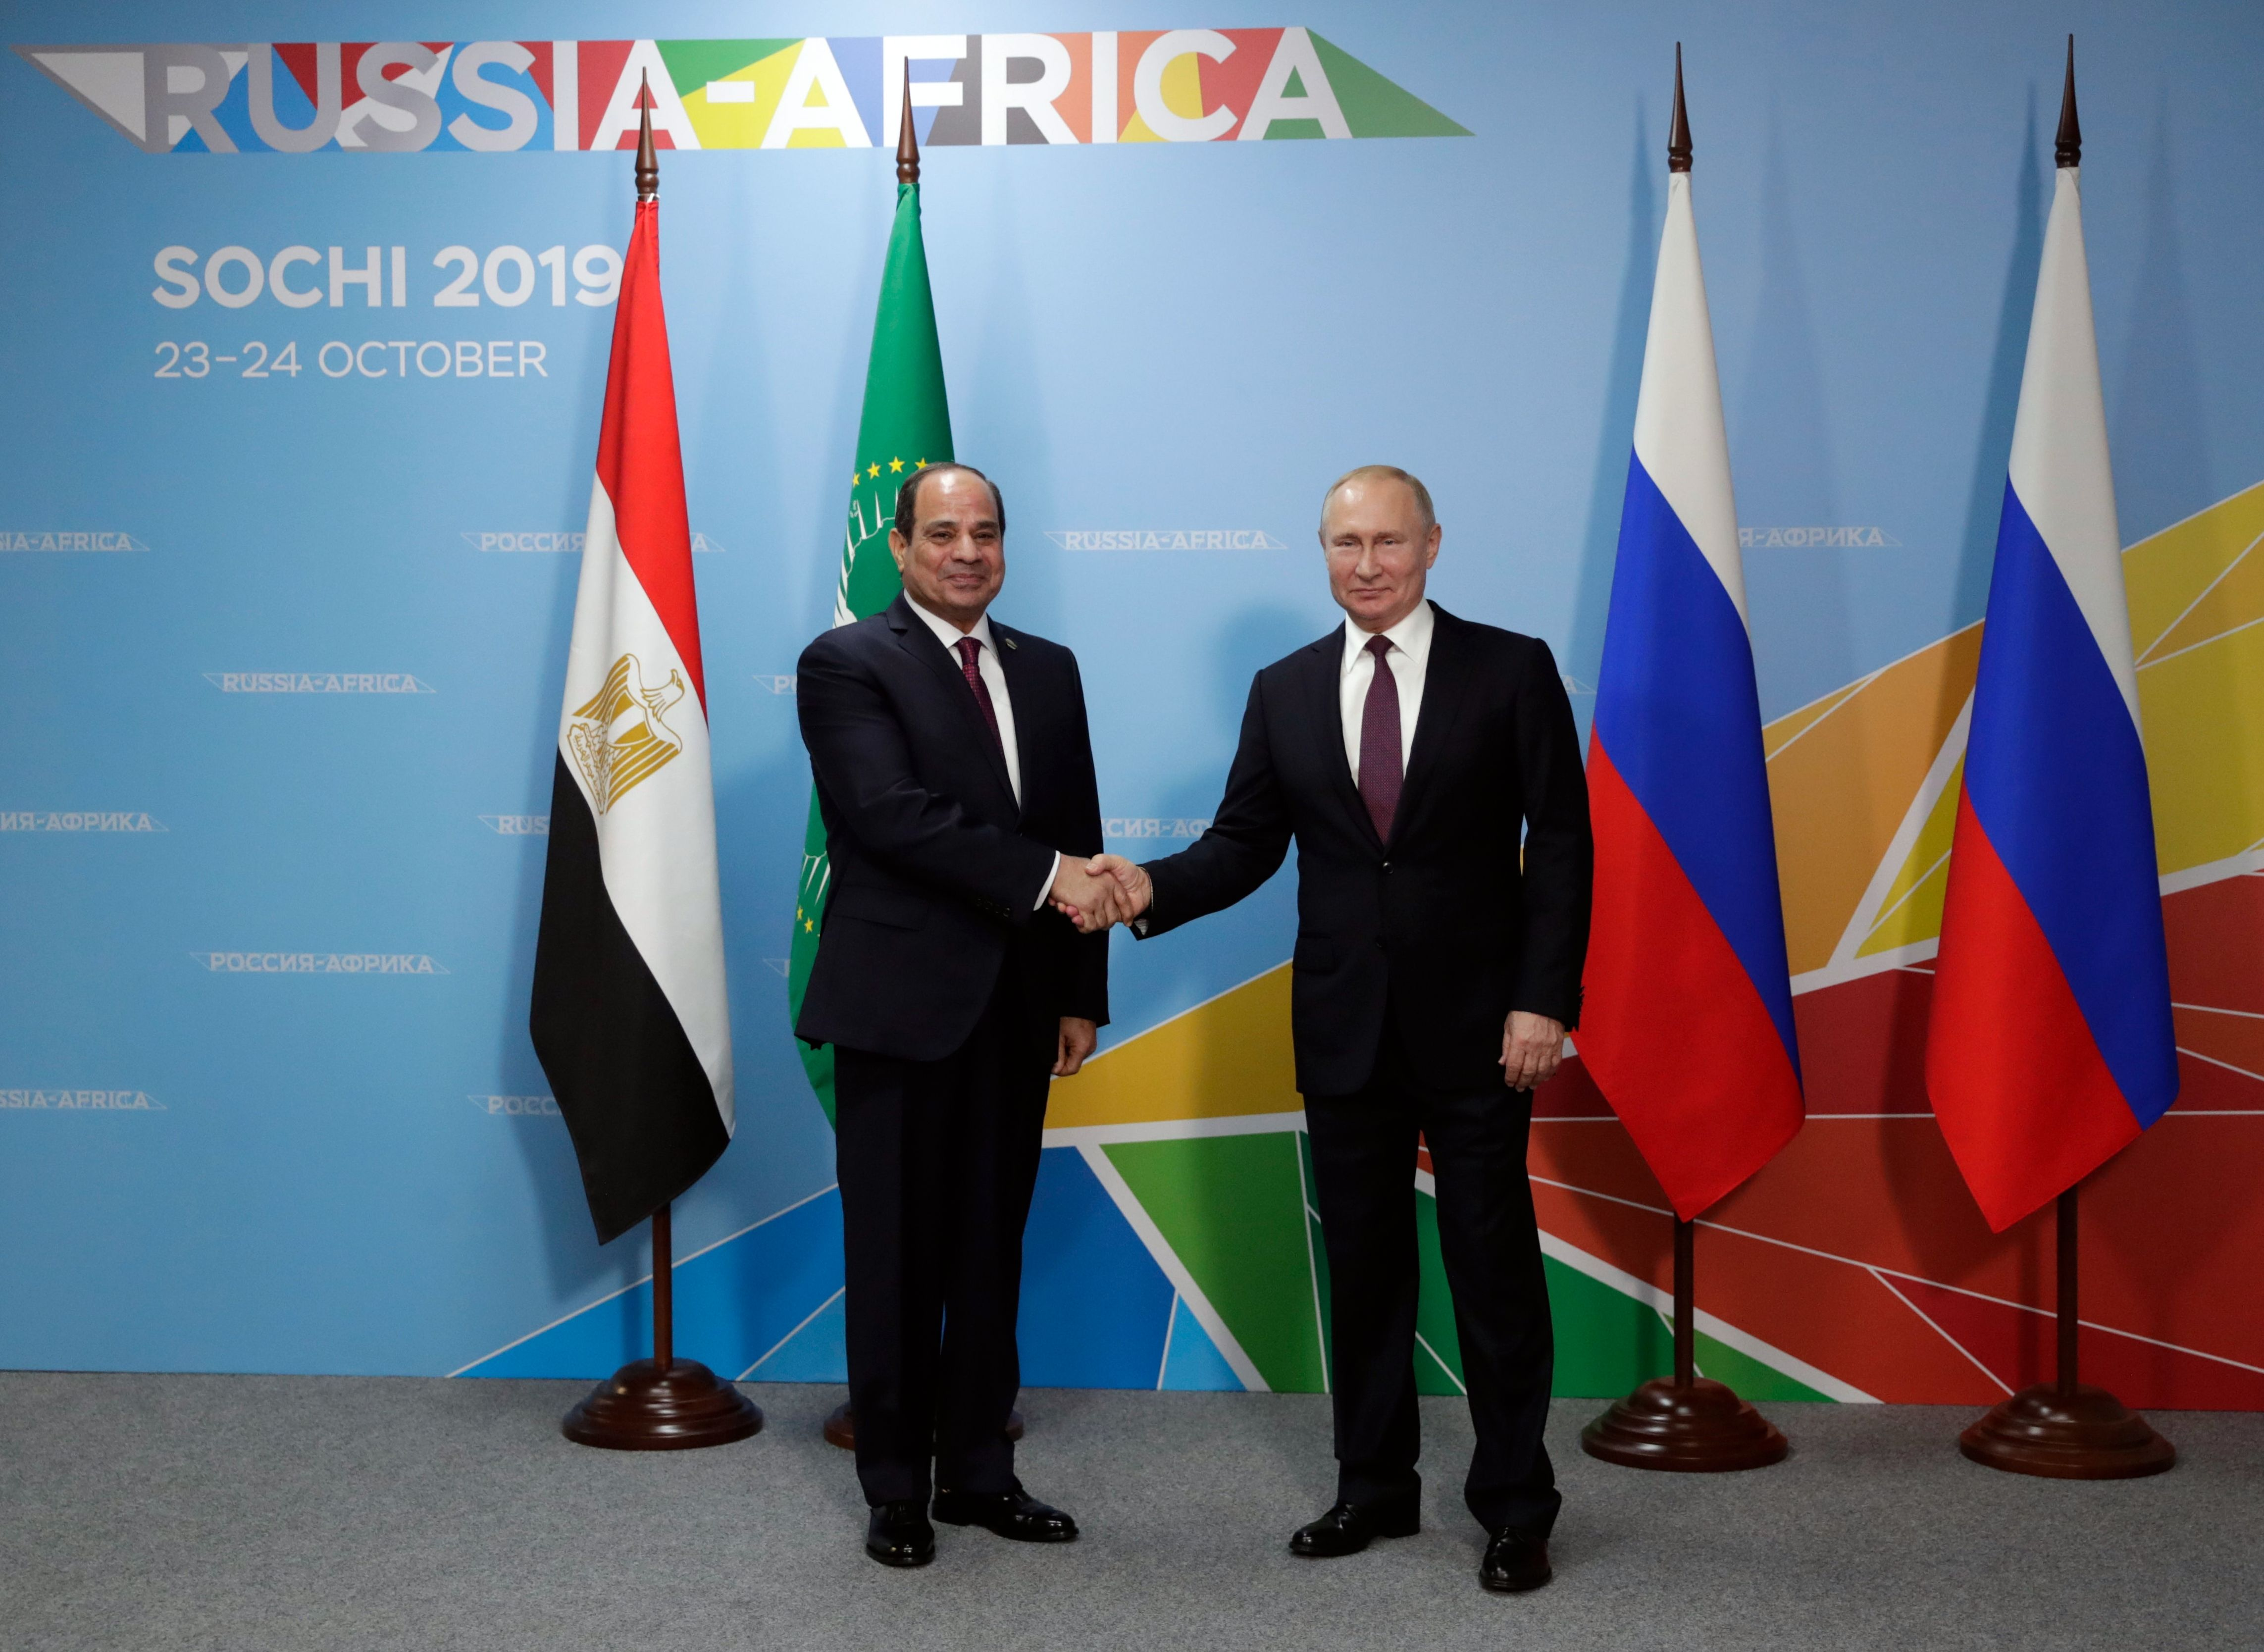 Russian President Vladimir Putin (R) meets with his Egyptian counterpart Abdel Fattah el-Sisi on the sidelines of the 2019 Russia-Africa Summit in Sochi on October 23, 2019. (Photo by MIKHAIL METZEL/SPUTNIK/AFP via Getty Images)